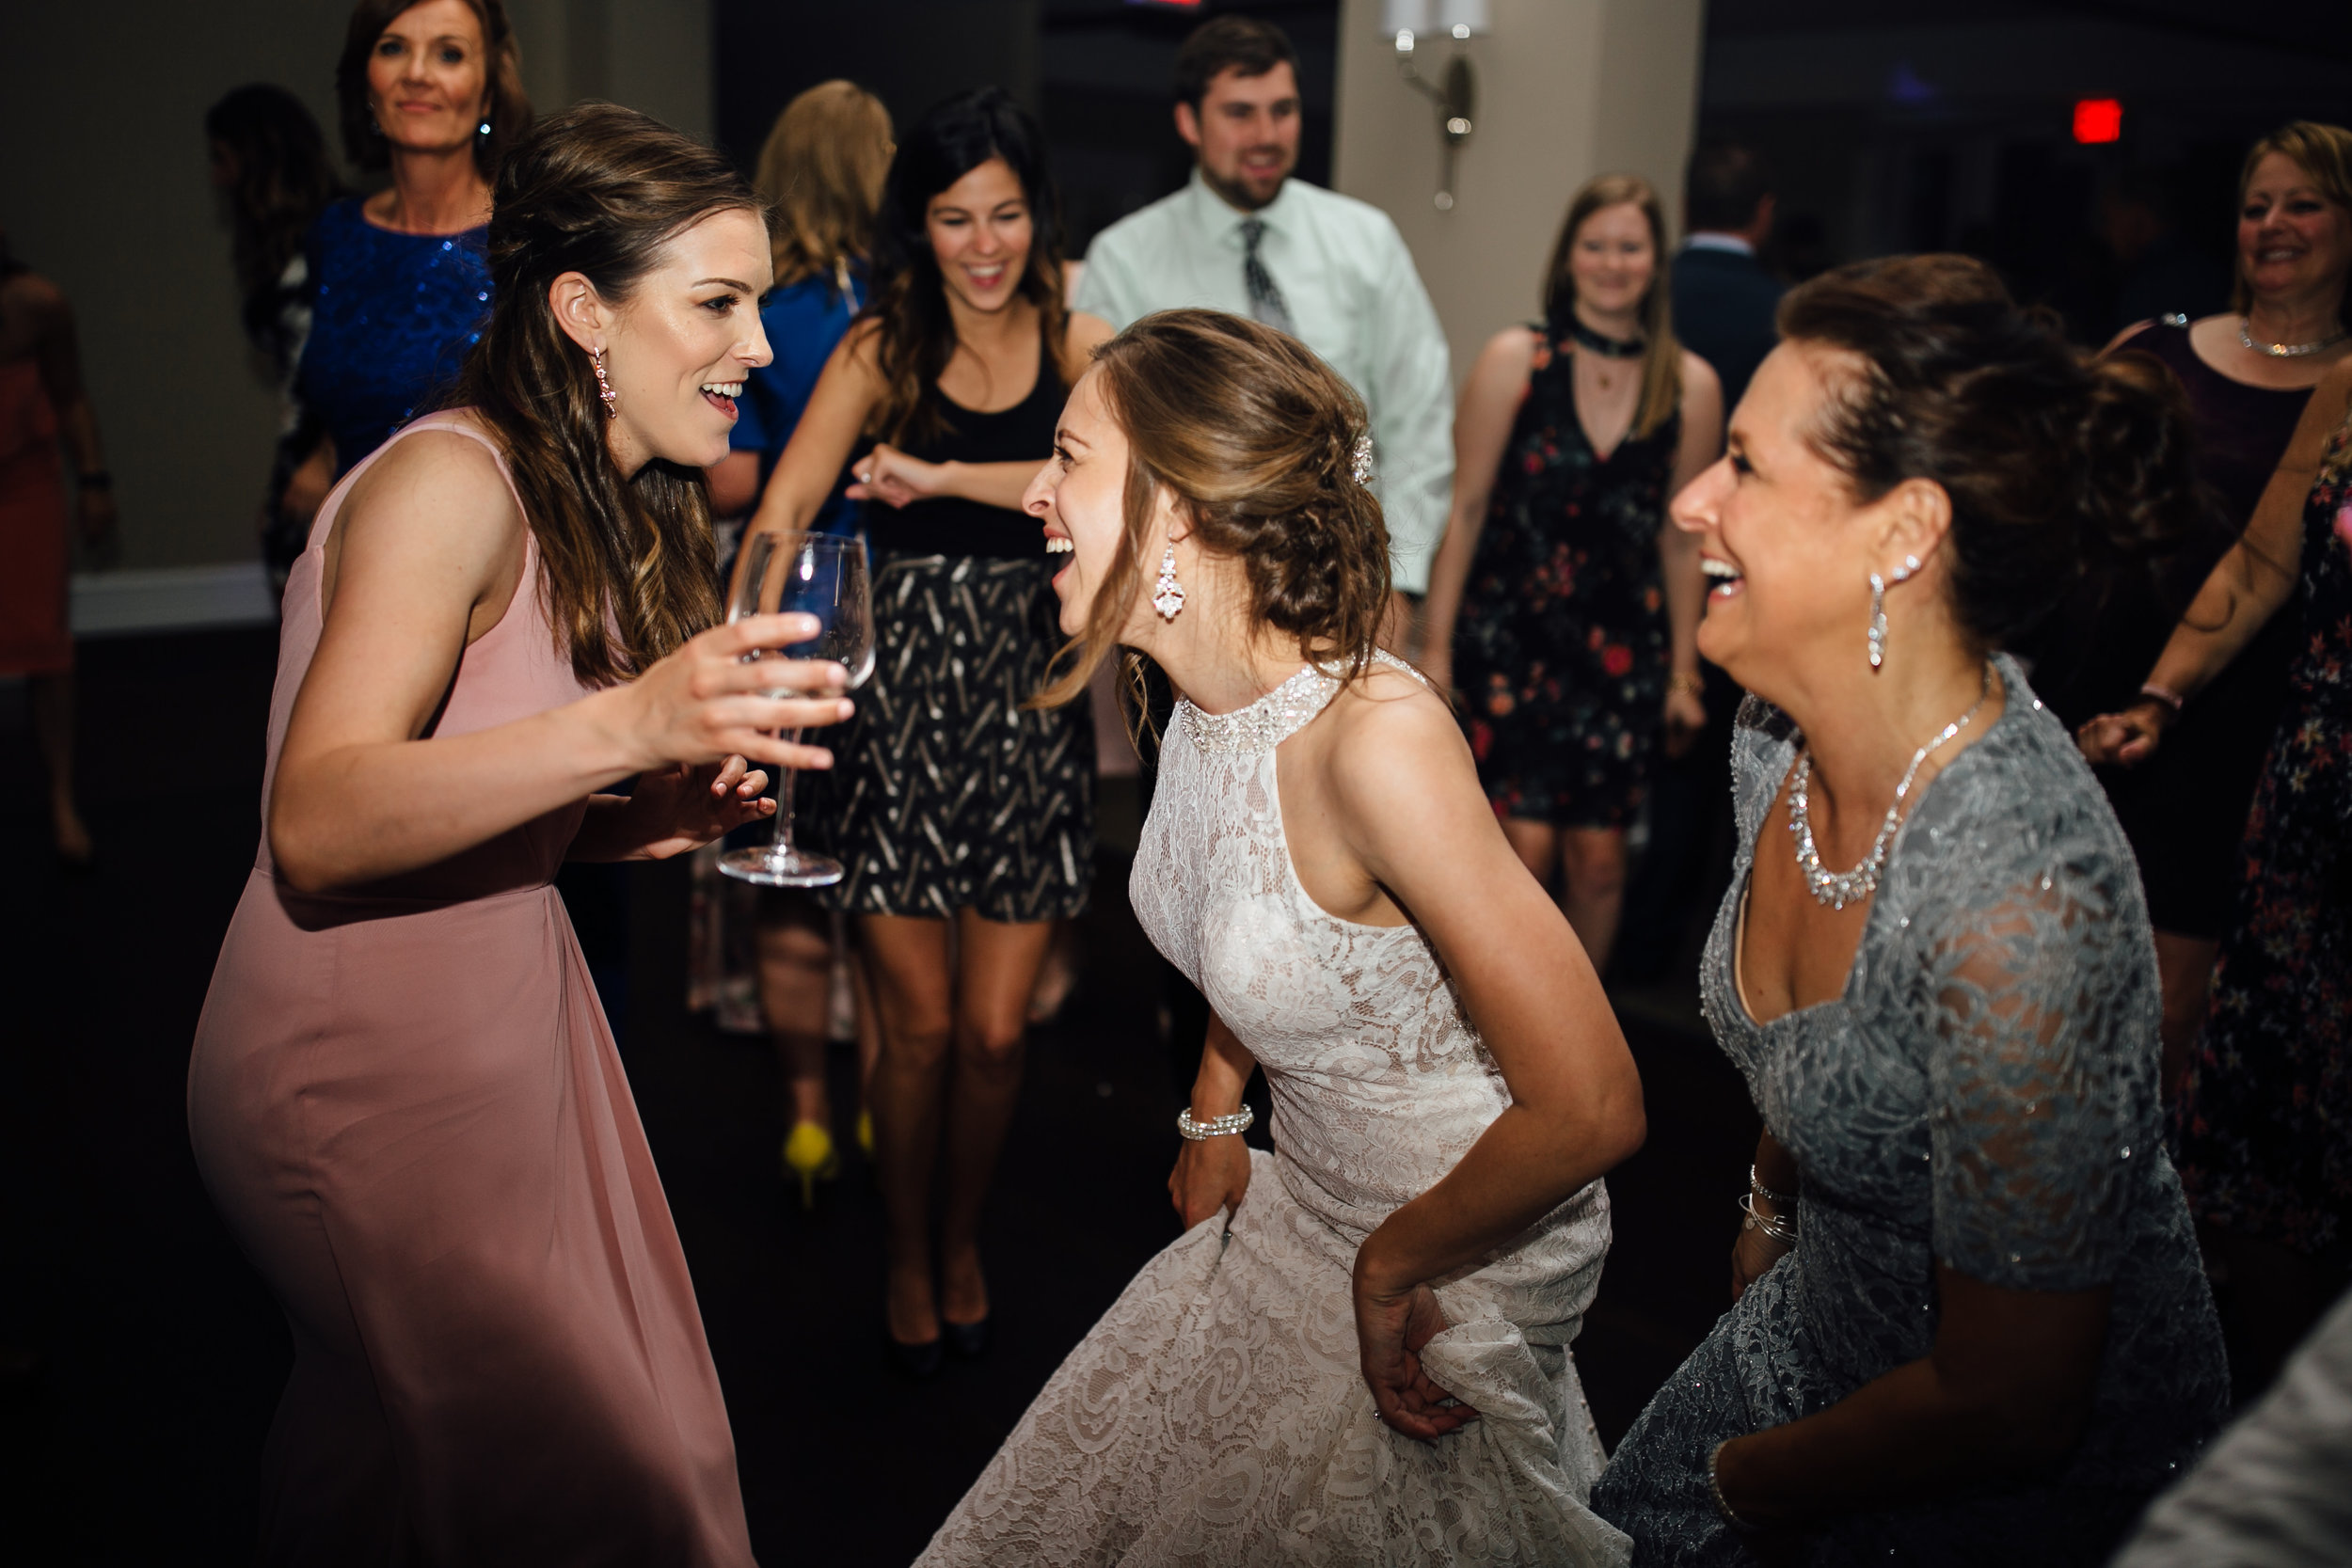 2018-5-Sammi-Travis-Reception-Grand-Rapids-Michigan-Wedding-Photographer-196.jpg